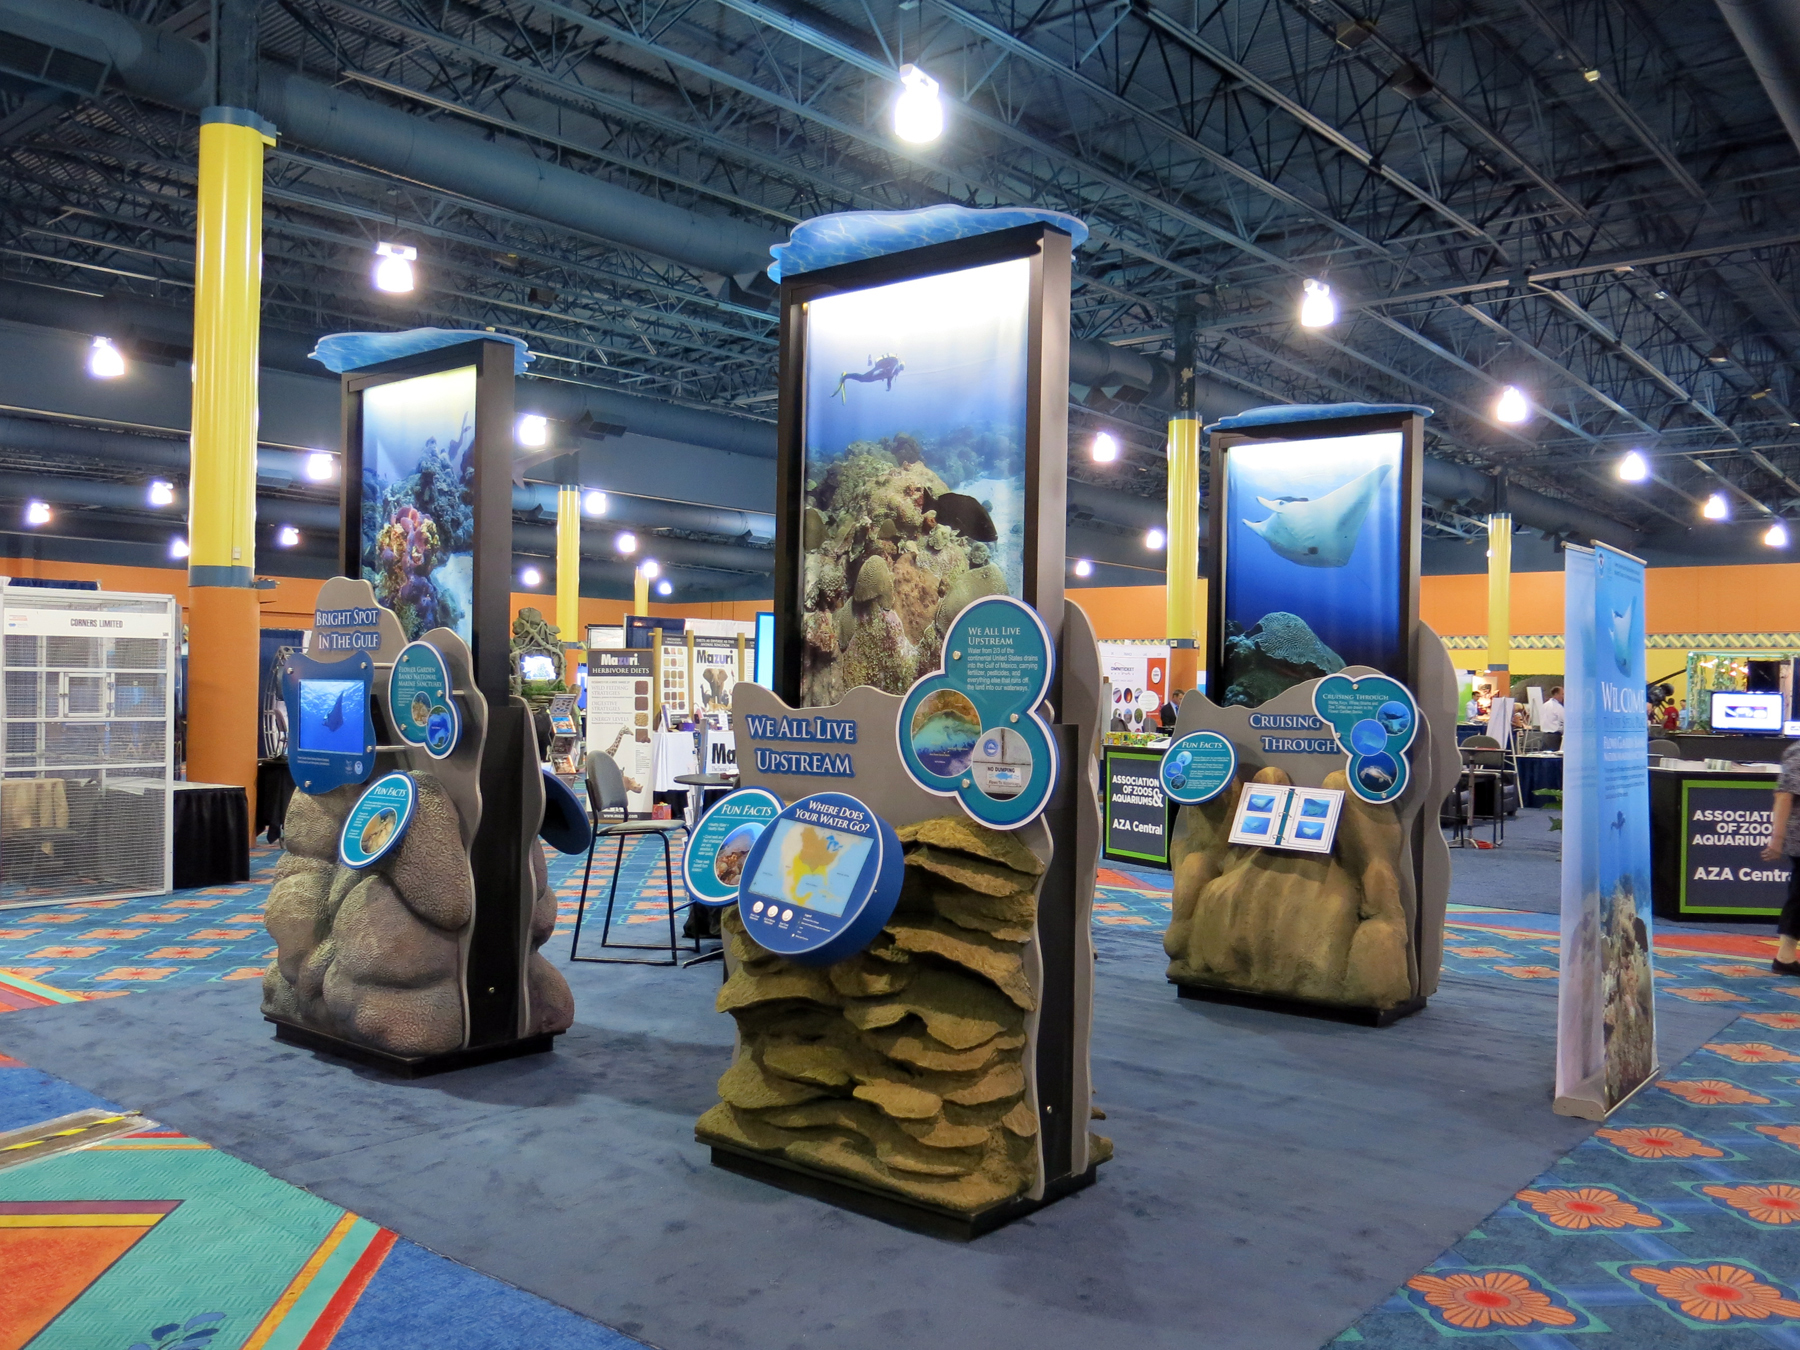 what traveling exhibits